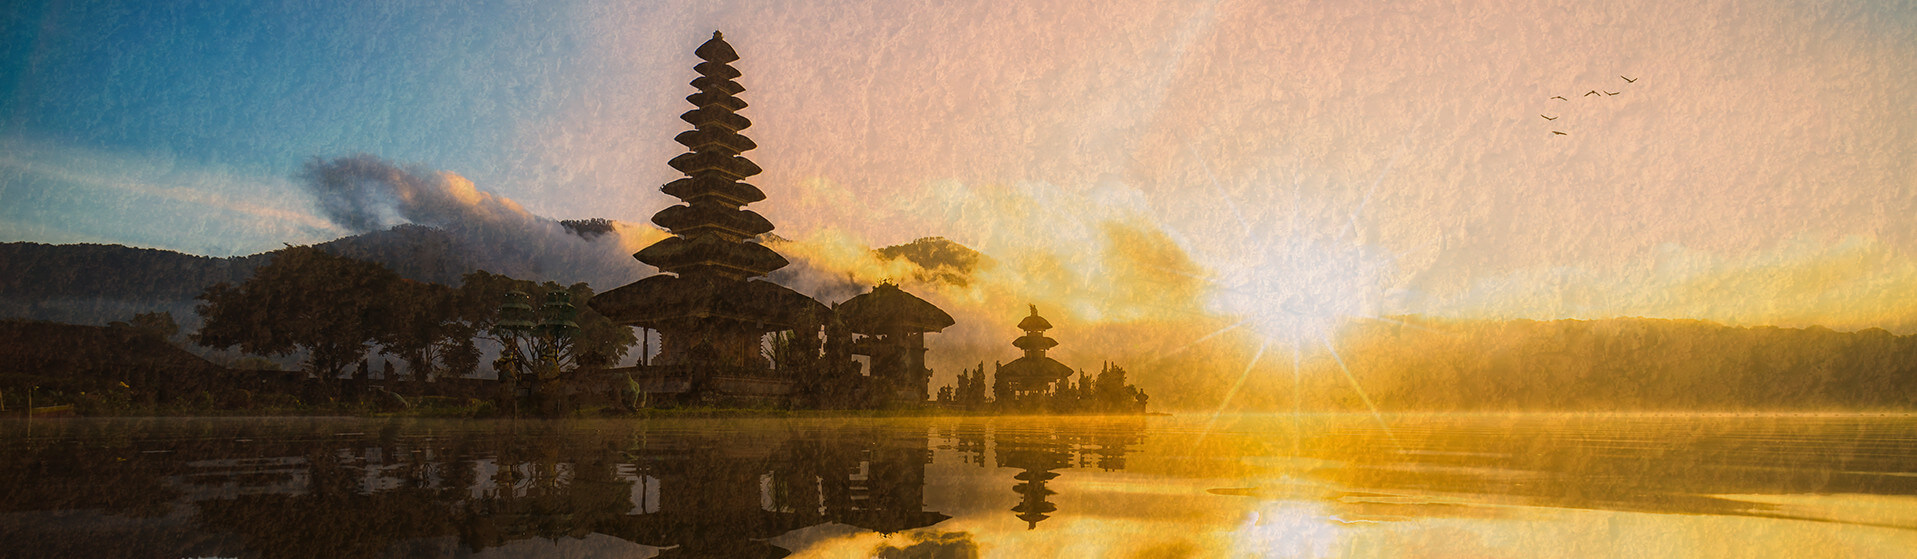 Indonesia travel landscape